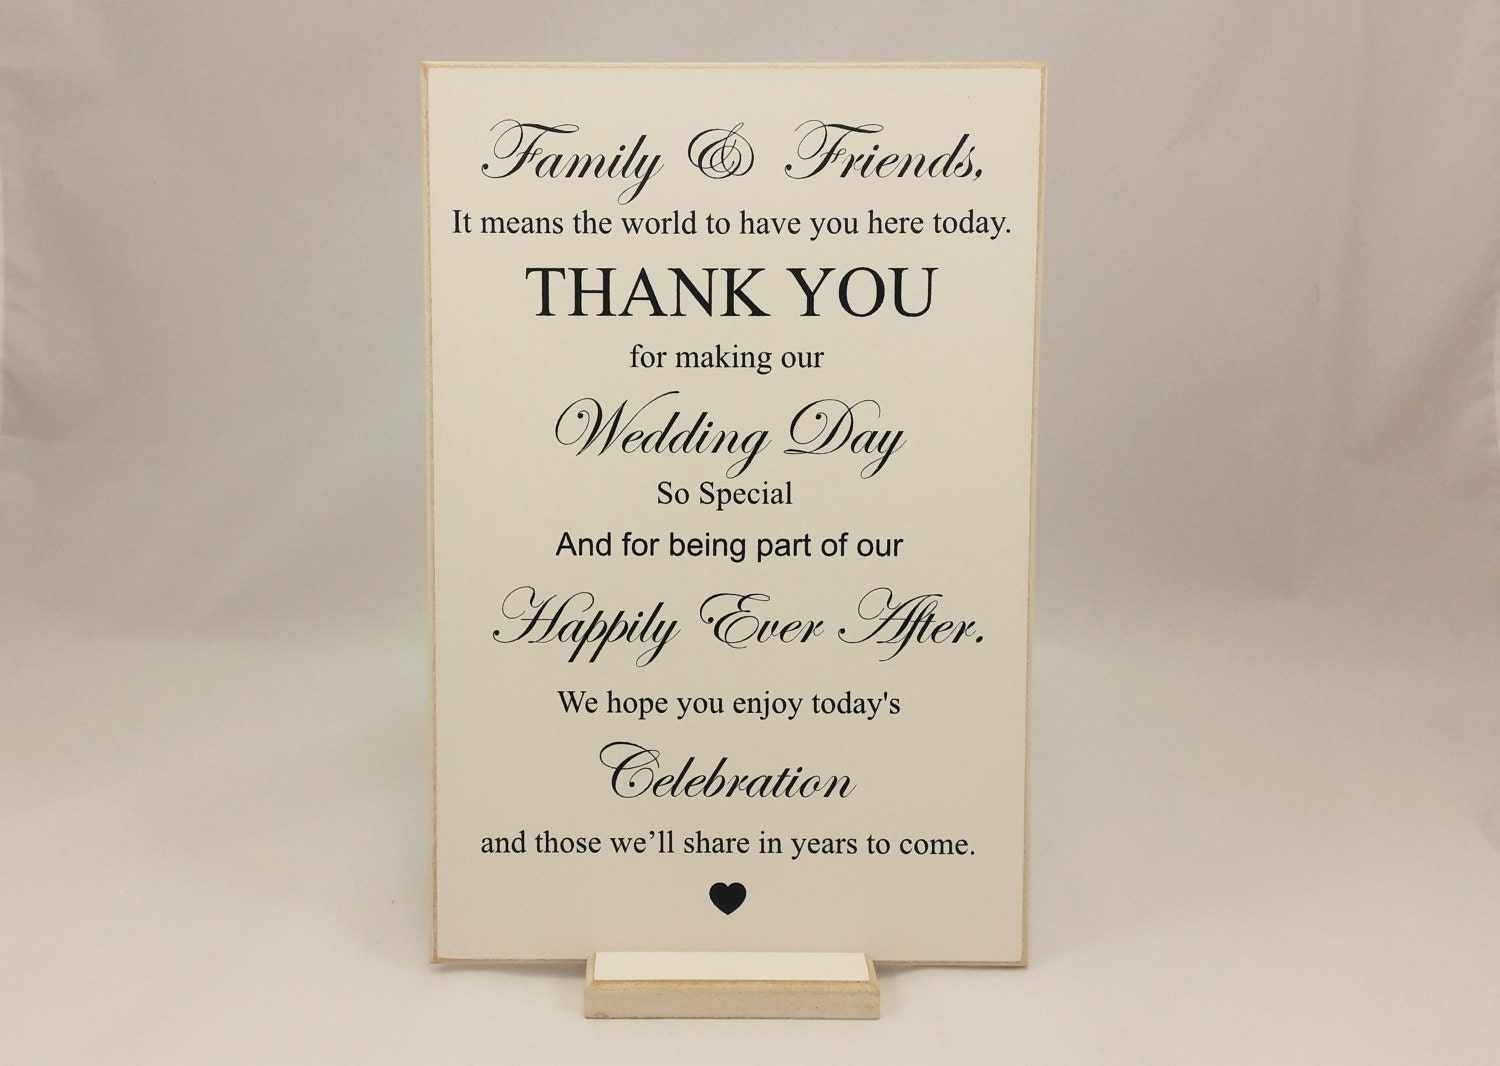 Wedding Gift Ideas For Close Friends: Wedding Sign Thank You Family And Friends Bride And Groom